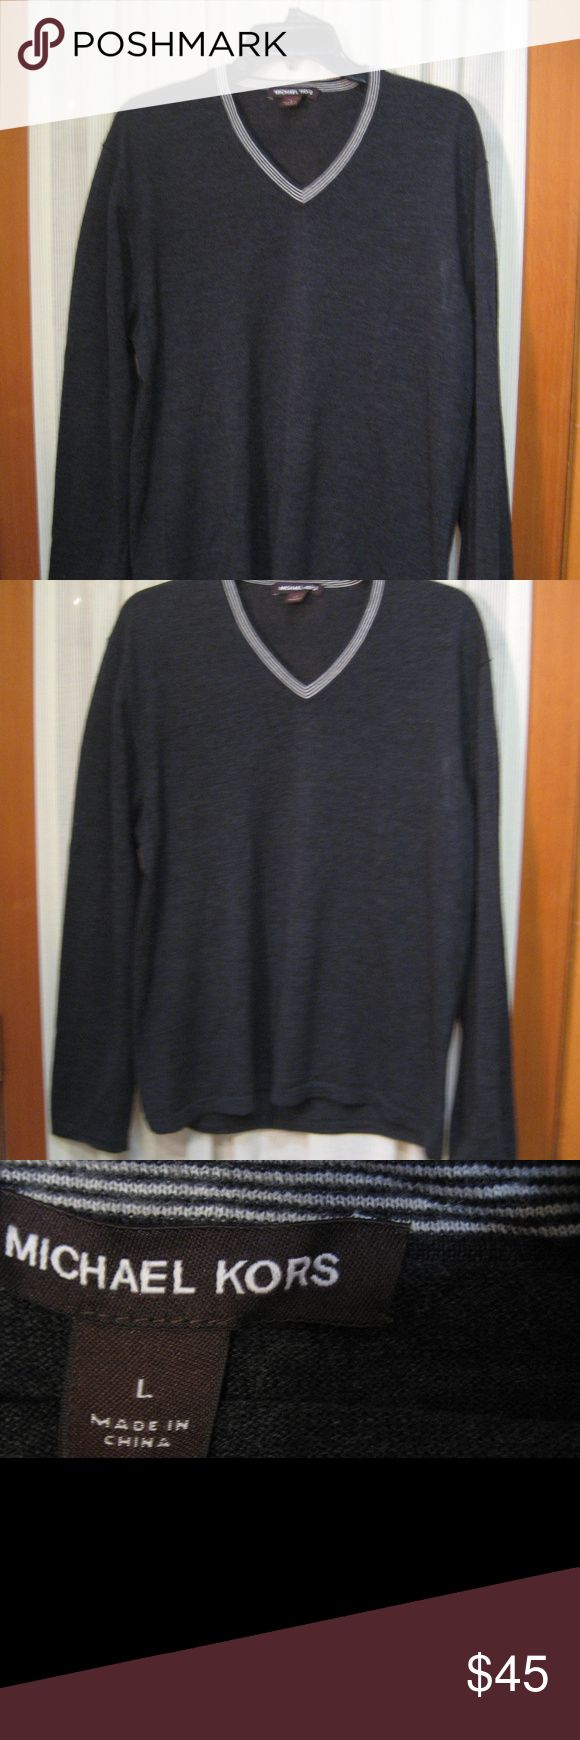 """Michael Kors Gray V - Neck Wool Sweater Size L Michael Kors  Gray Men's V - Neck Sweater Merino Wool Size Large  Measurements - All Done Laying Flat  Size Type - Regular Size Large Color - Gray Material -100% Wool Long Sleeve V-Neck Neck Style - V- Neck Sleeve Style - Long Chest - 22 """" Sleeve - 25"""" Length 26""""  Very Good  pre-owned condition d1216 Michael Kors Sweaters"""